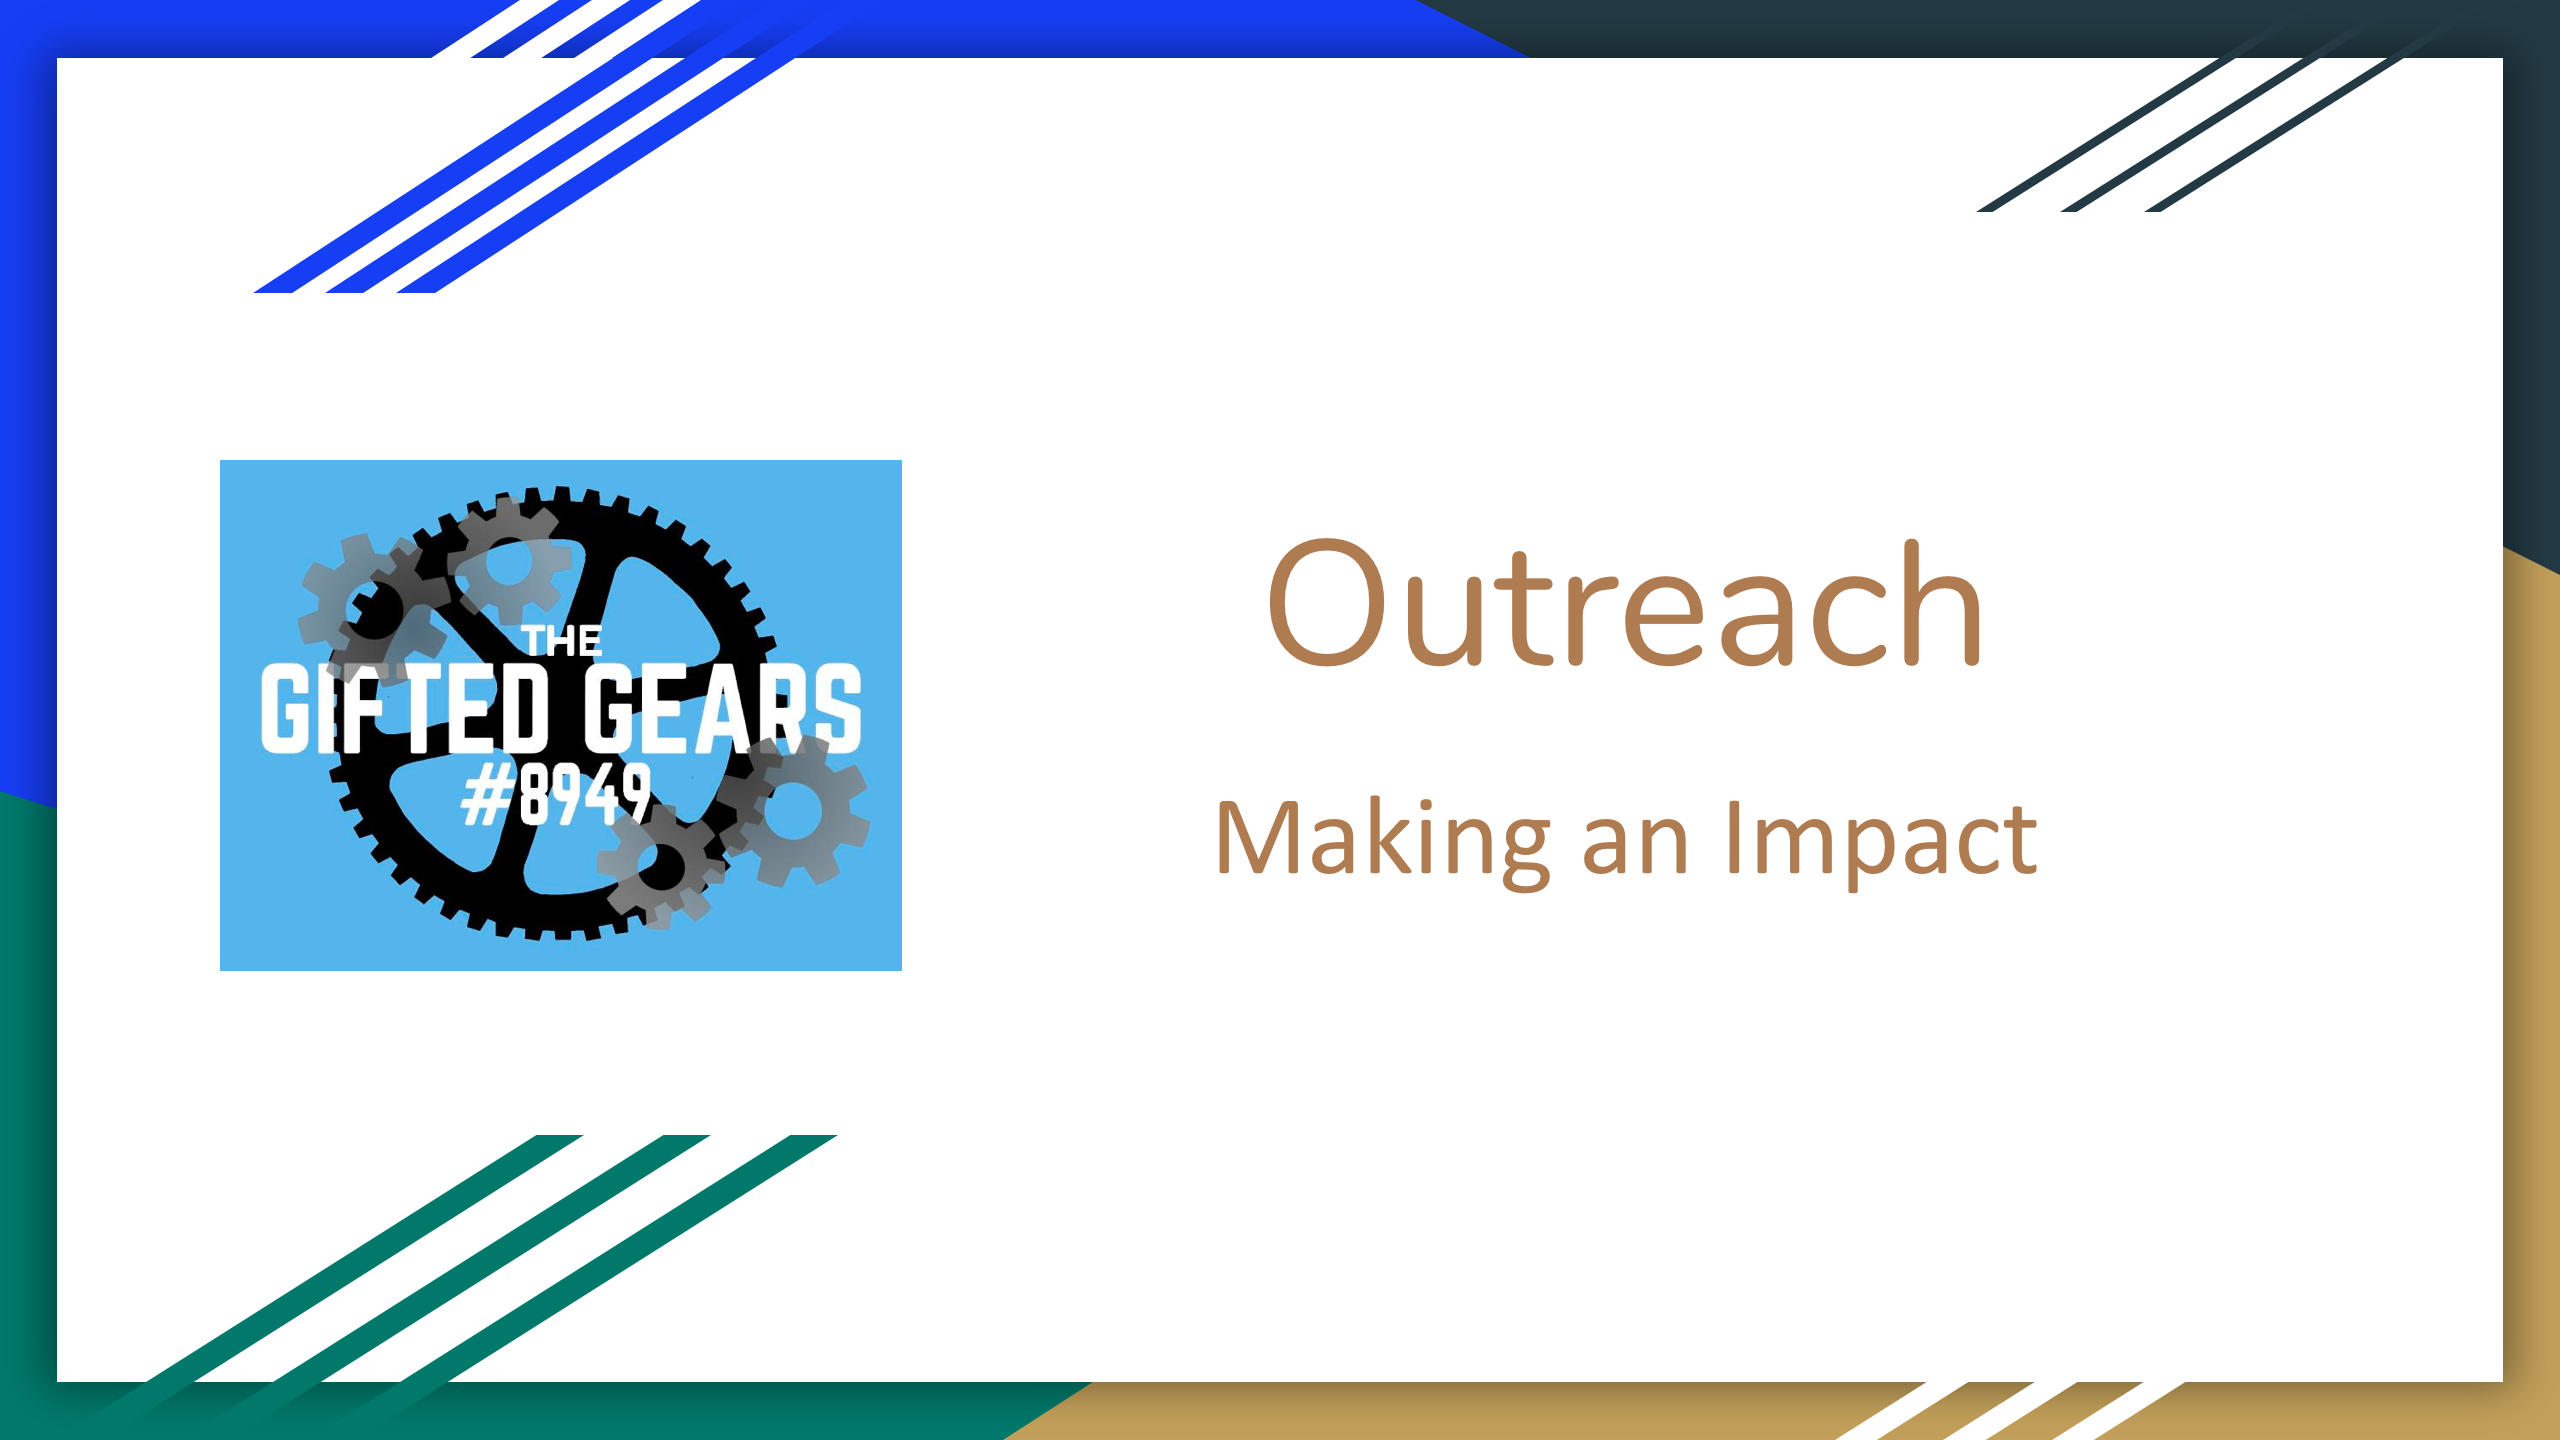 Outreach: Making an Impact by Gifted Gears